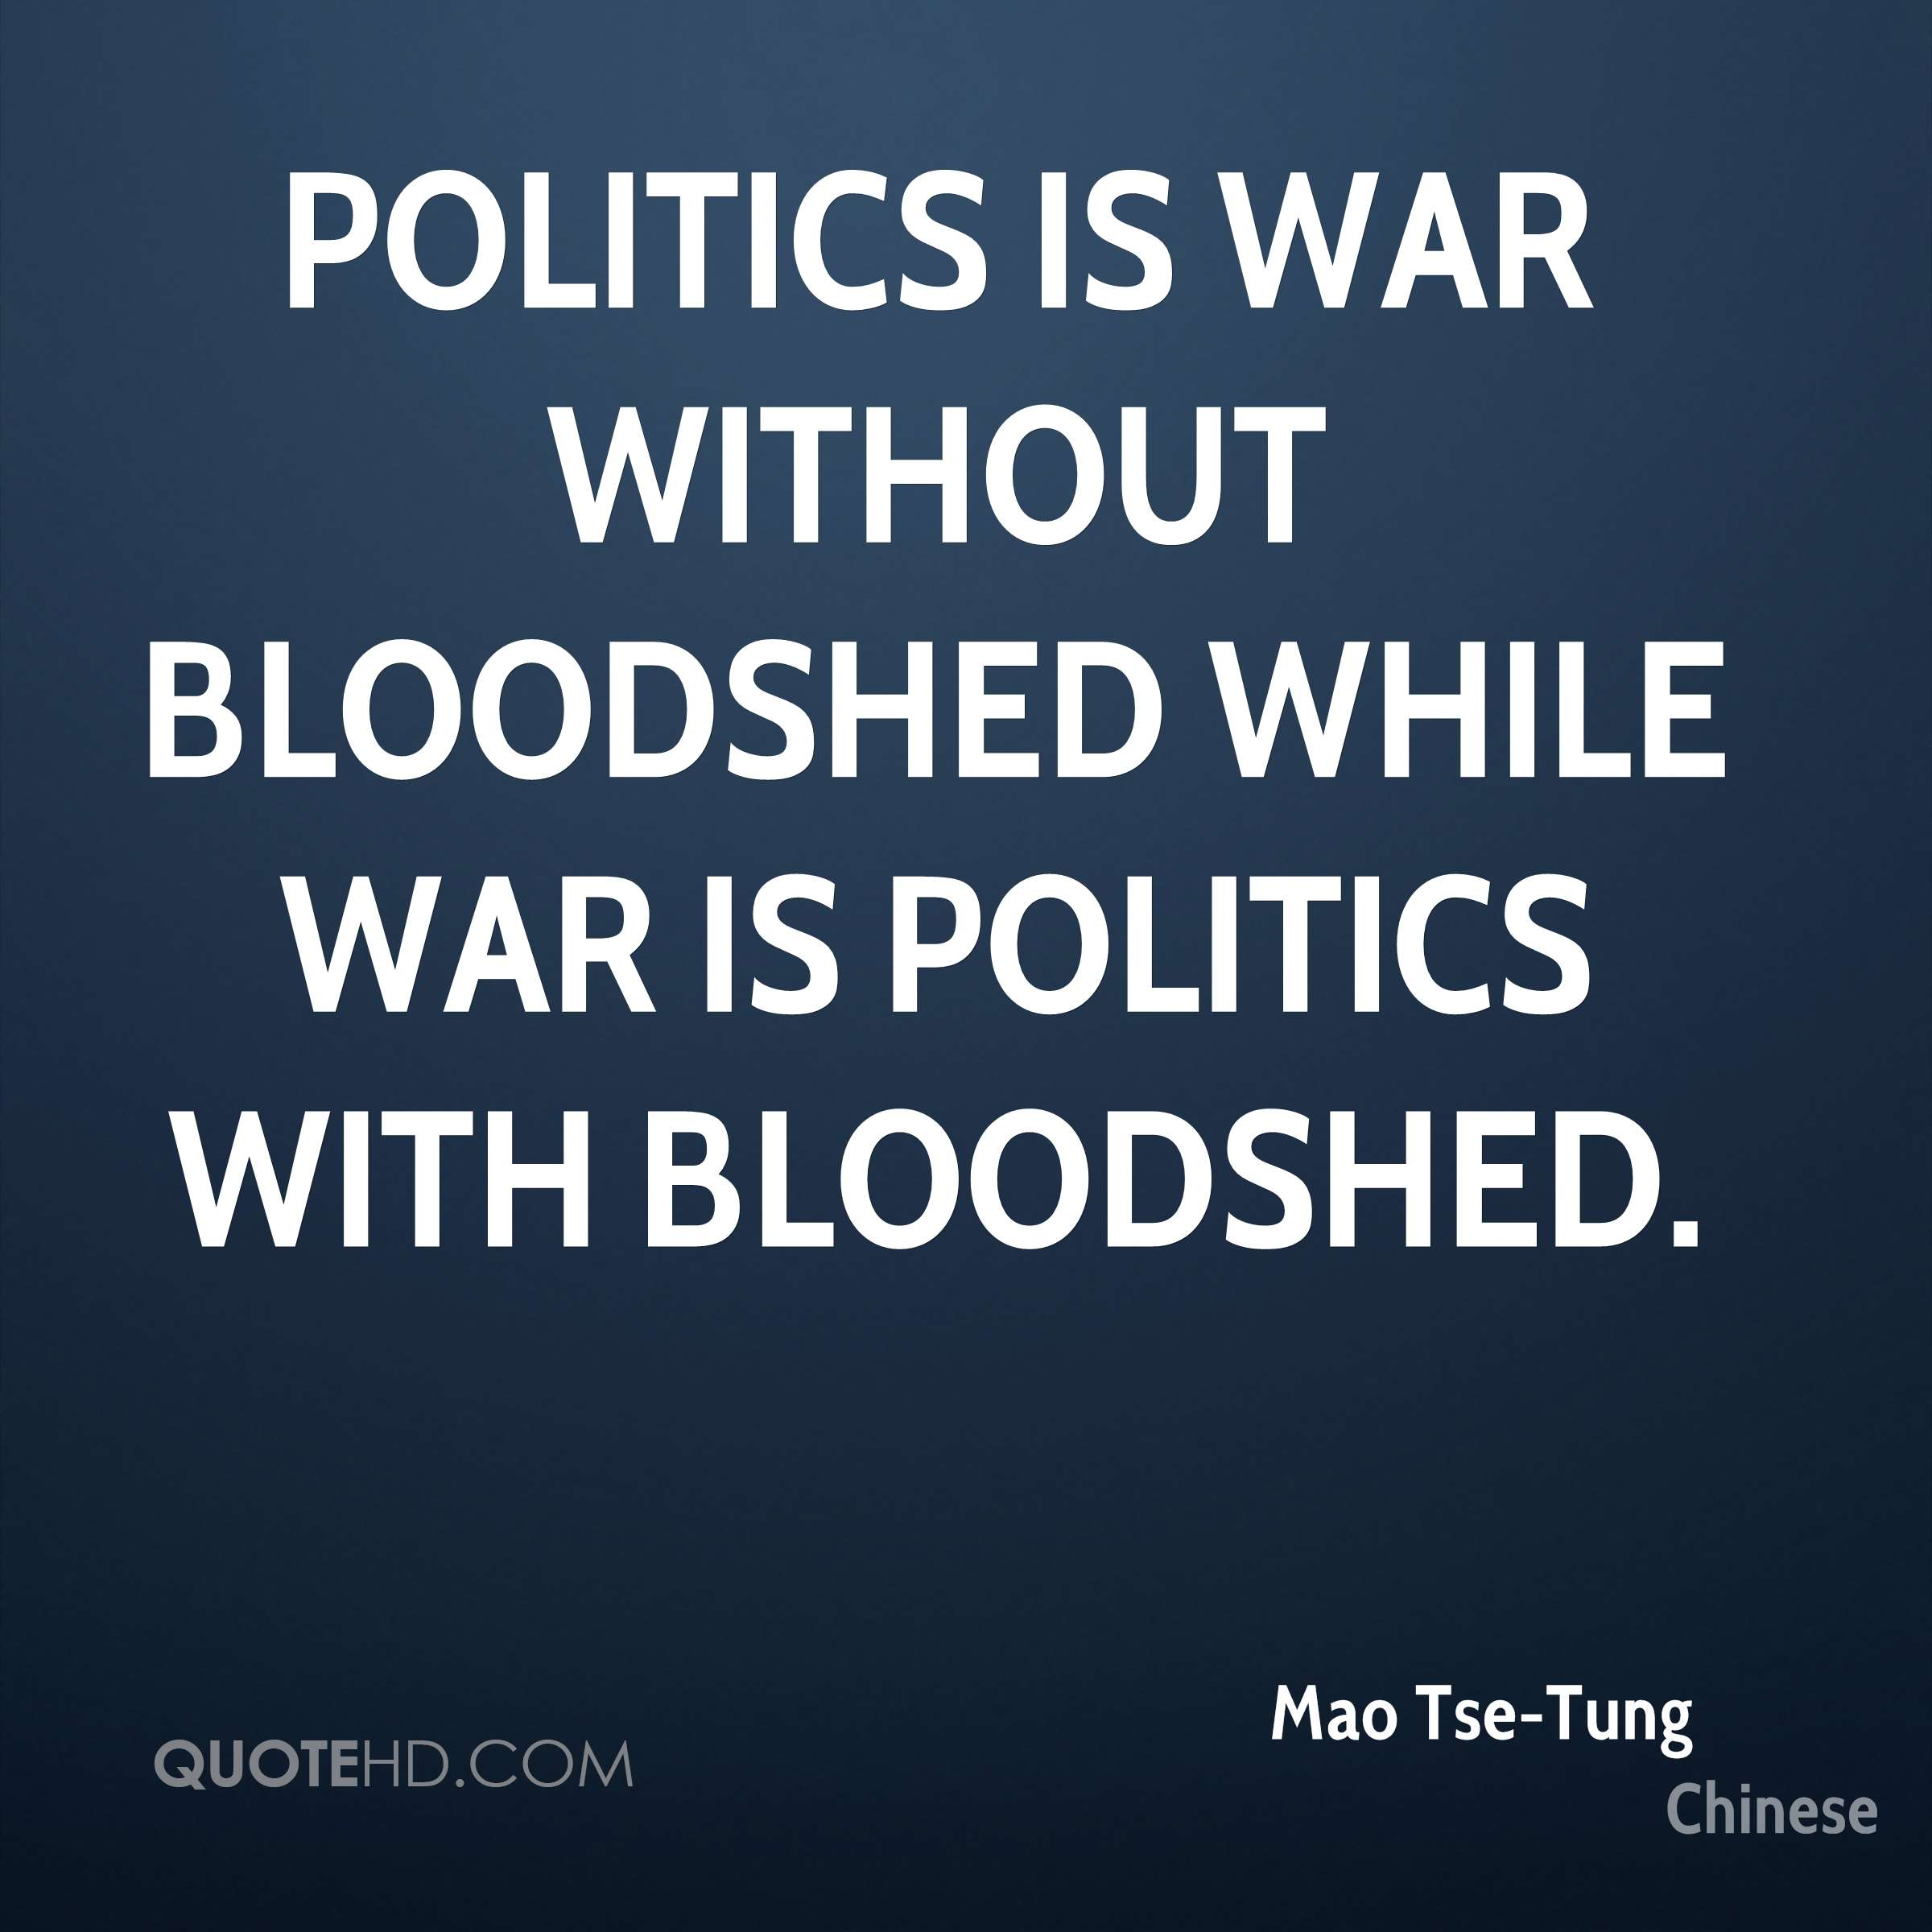 Politics is war without bloodshed while war is politics with bloodshed.